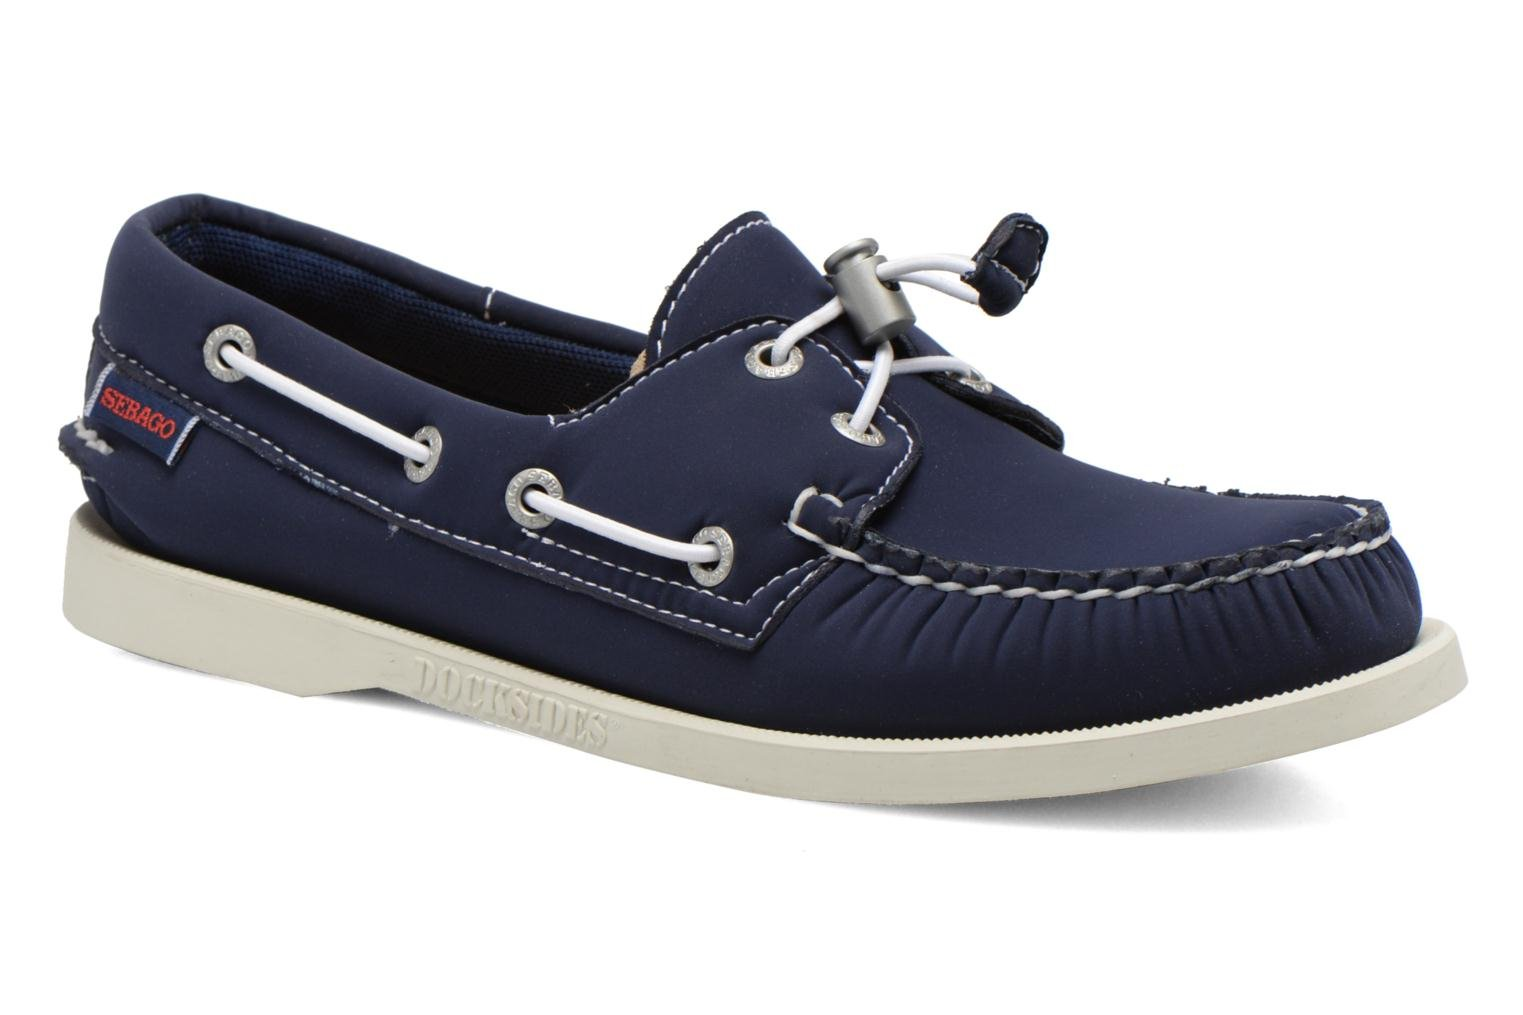 Docksides W Navy Neoprene